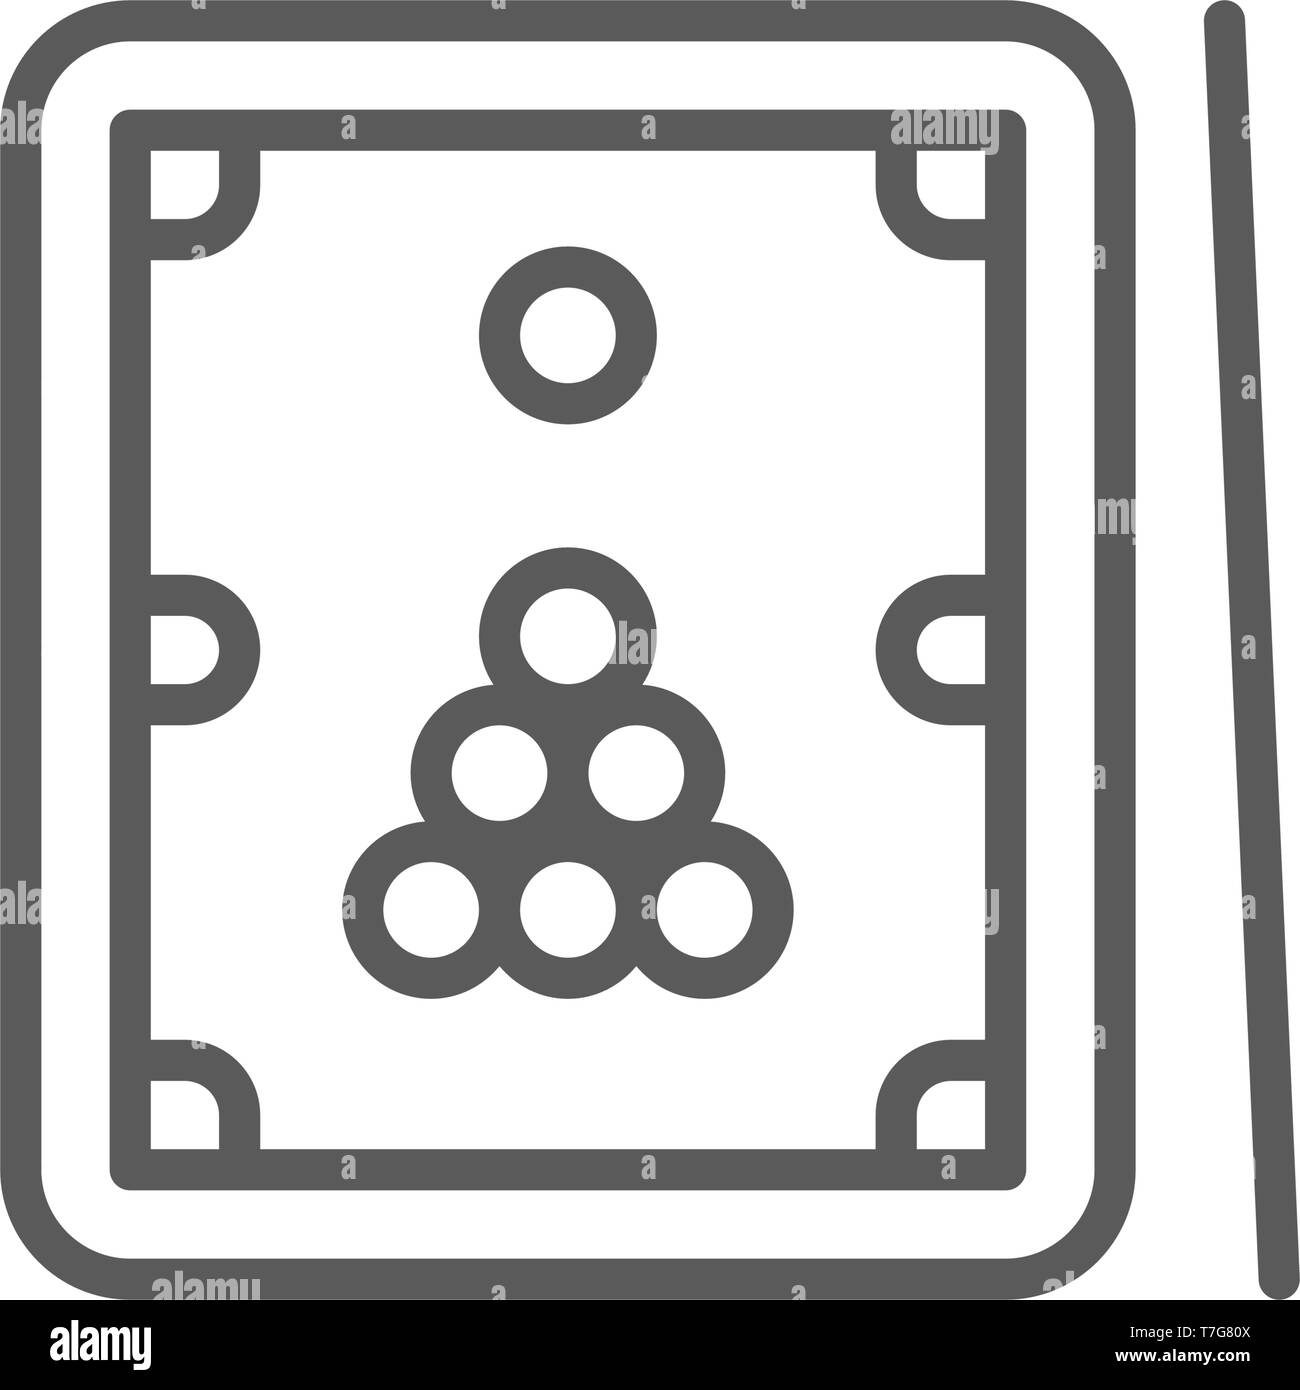 Billiards, table with cue and balls line icon. - Stock Vector